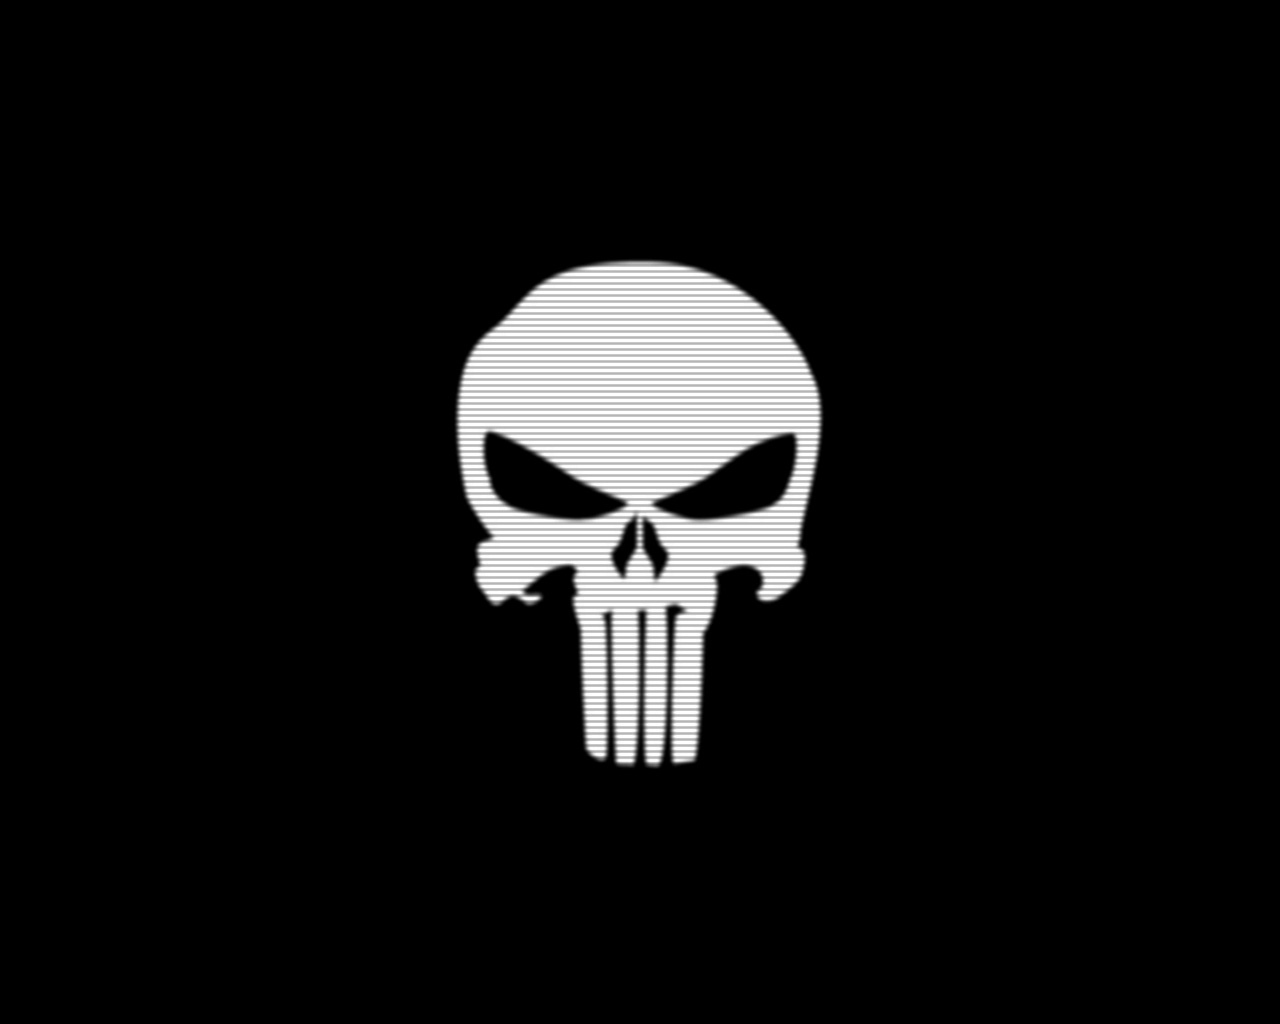 #punisher - DeviantArt